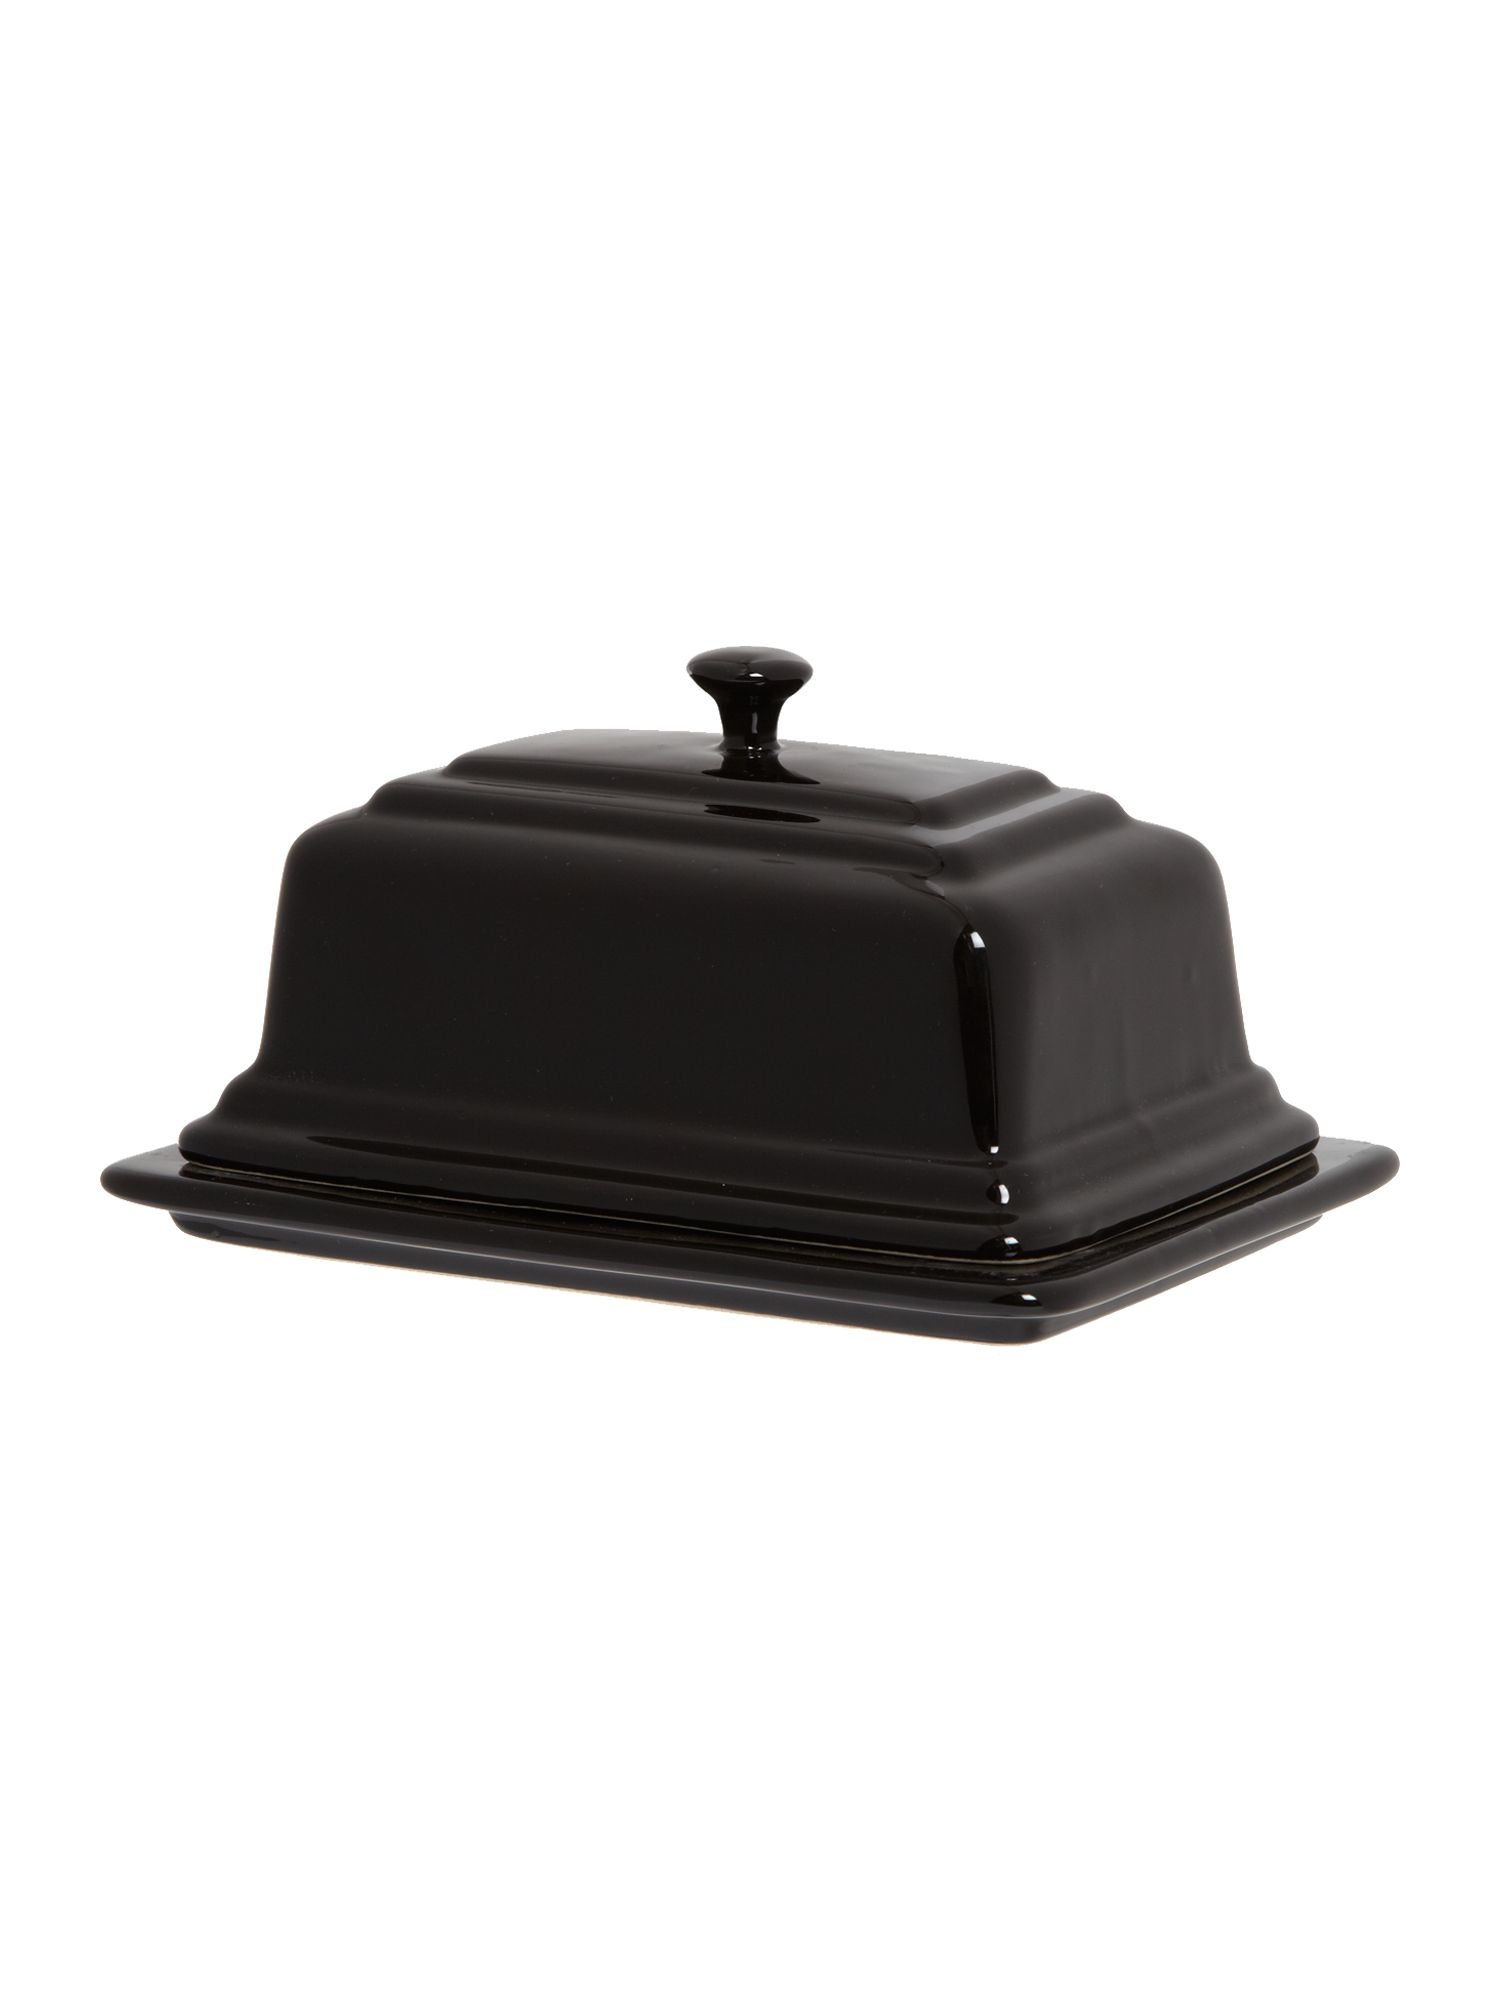 Maison butter dish, Black